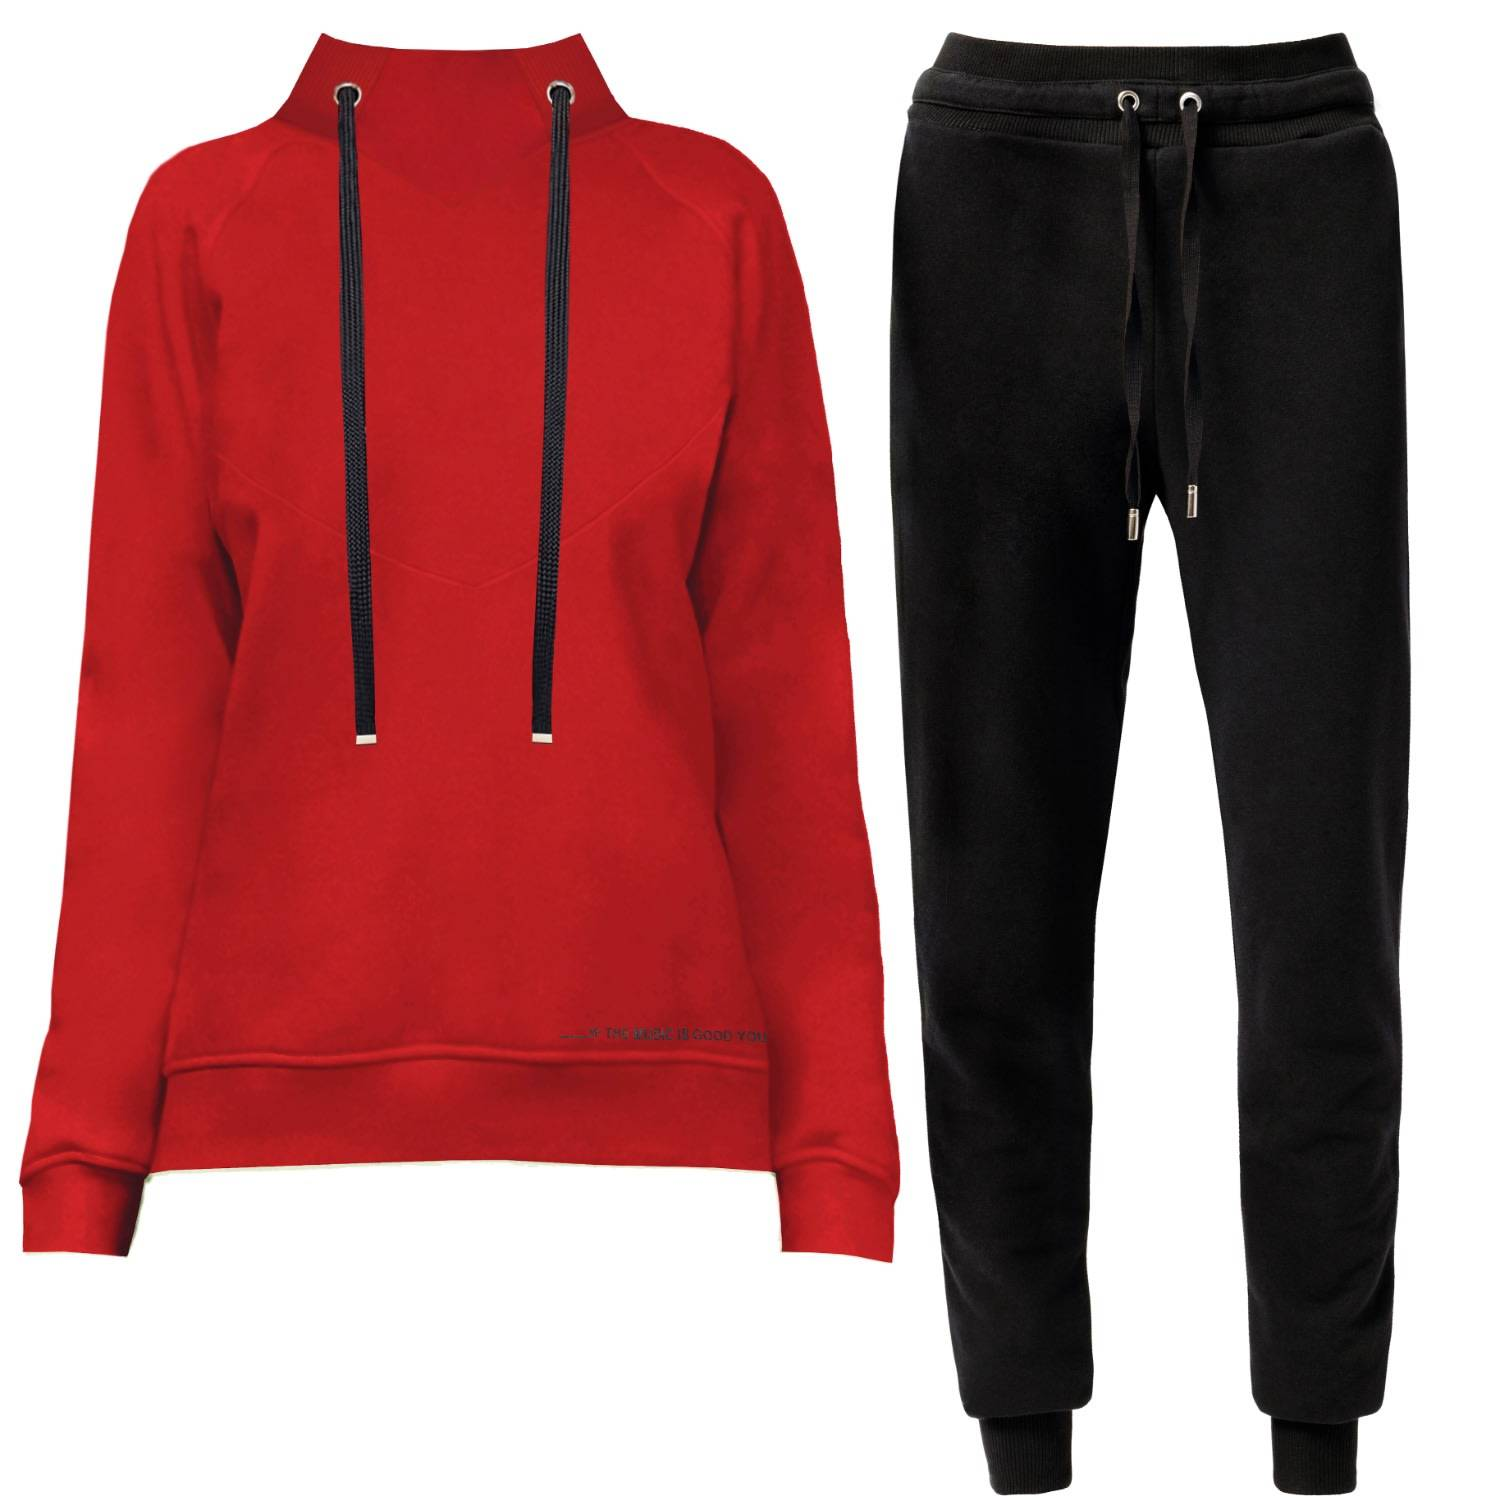 Angelika Jozefczyk - Cosy Home Tracksuit Red & Black